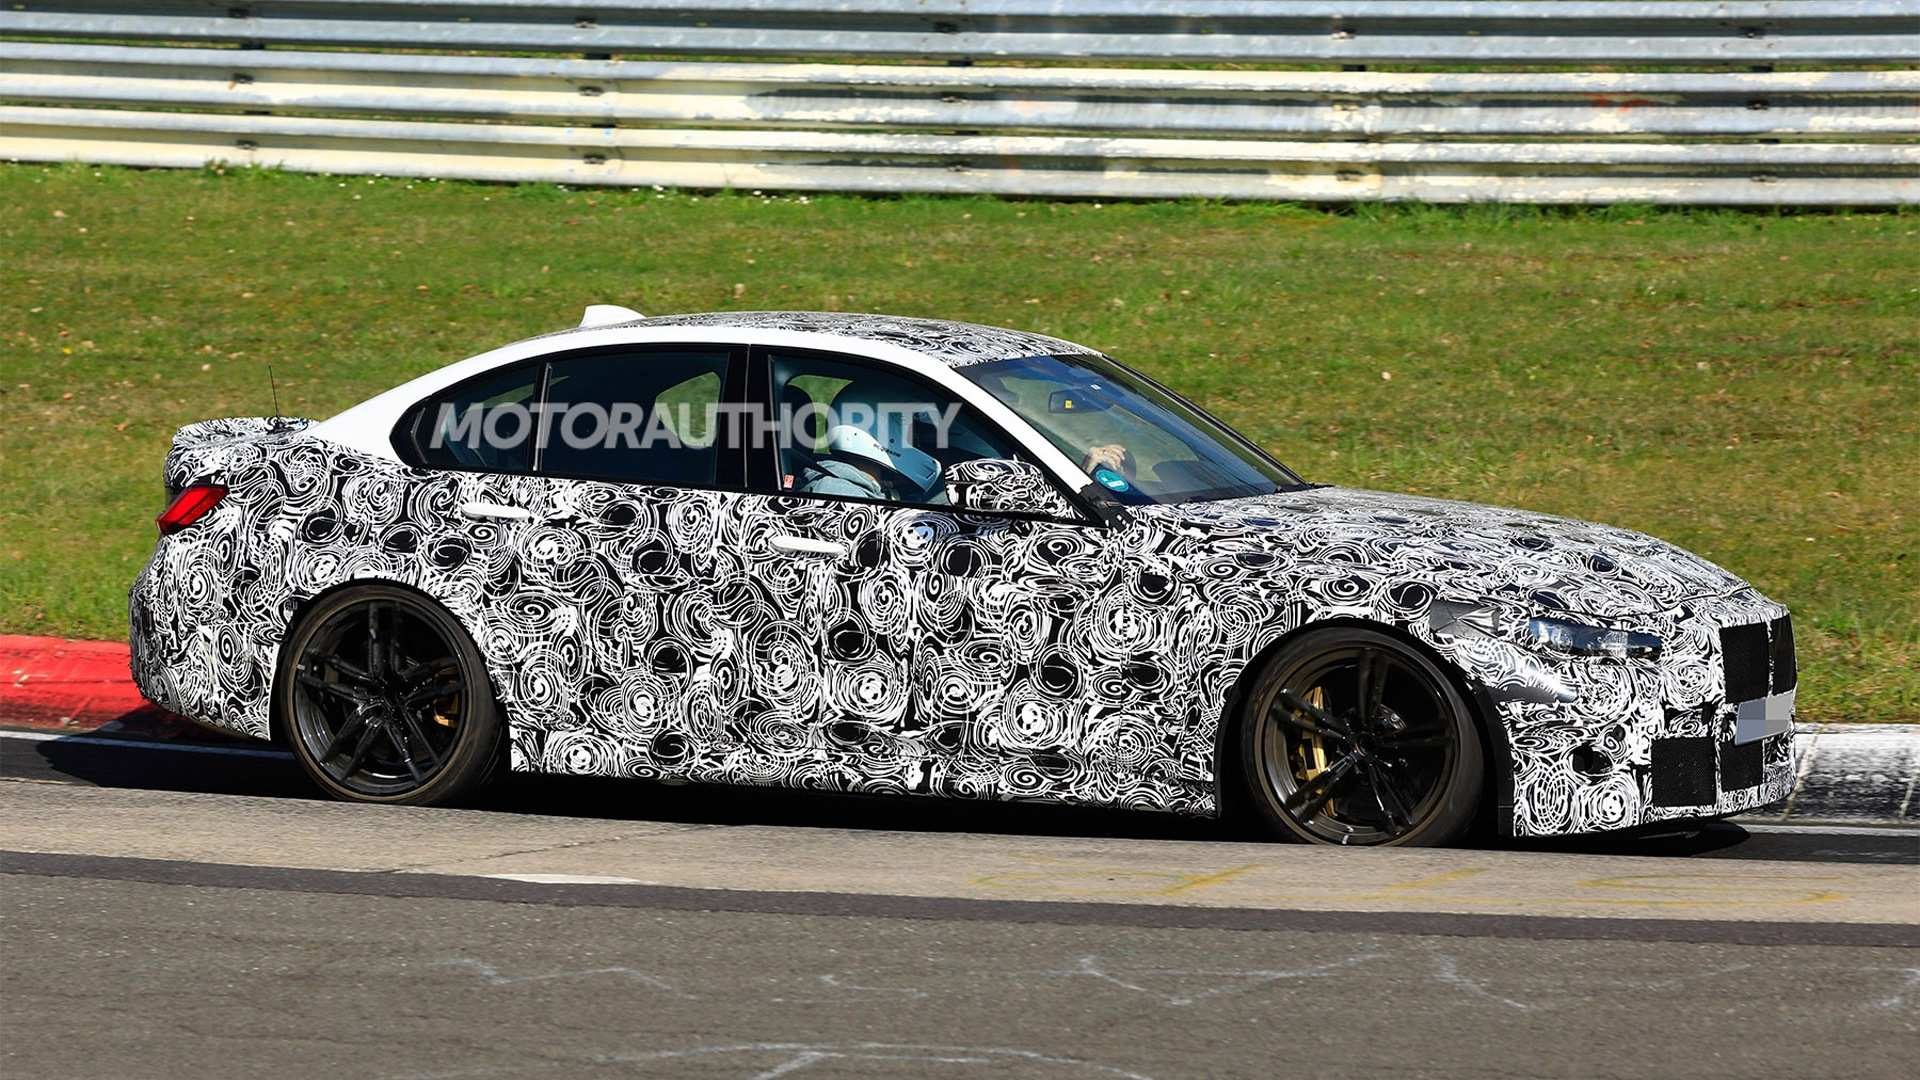 23 Gallery of When Does The 2020 Bmw M3 Come Out Photos for When Does The 2020 Bmw M3 Come Out